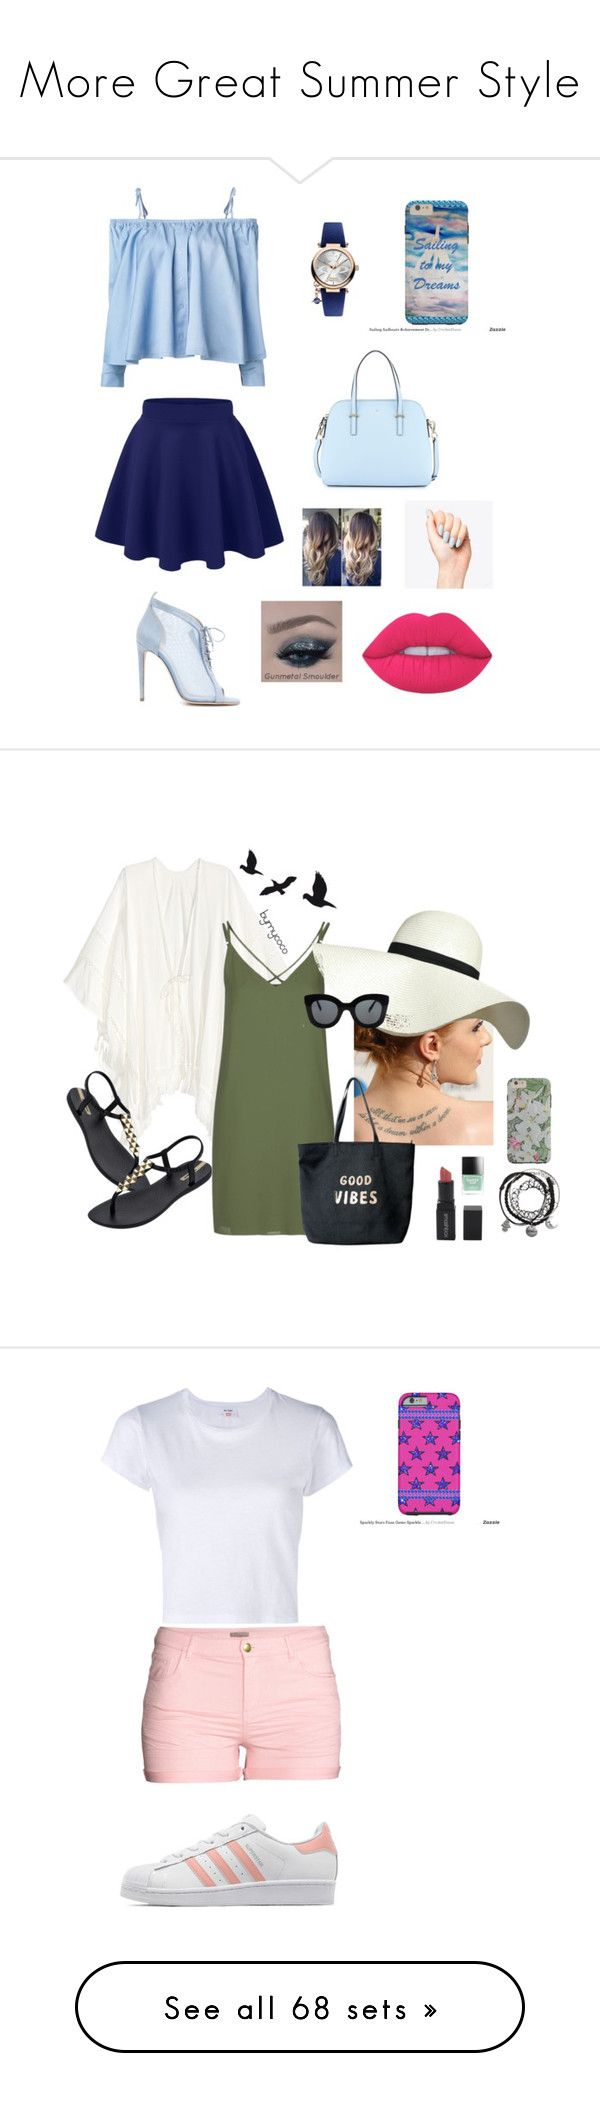 """""""More Great Summer Style"""" by cricketdiane ❤ liked on Polyvore featuring interior, interiors, interior design, home, home decor, interior decorating, Sandy Liang, Chloe Gosselin, Vivienne Westwood and Kate Spade"""